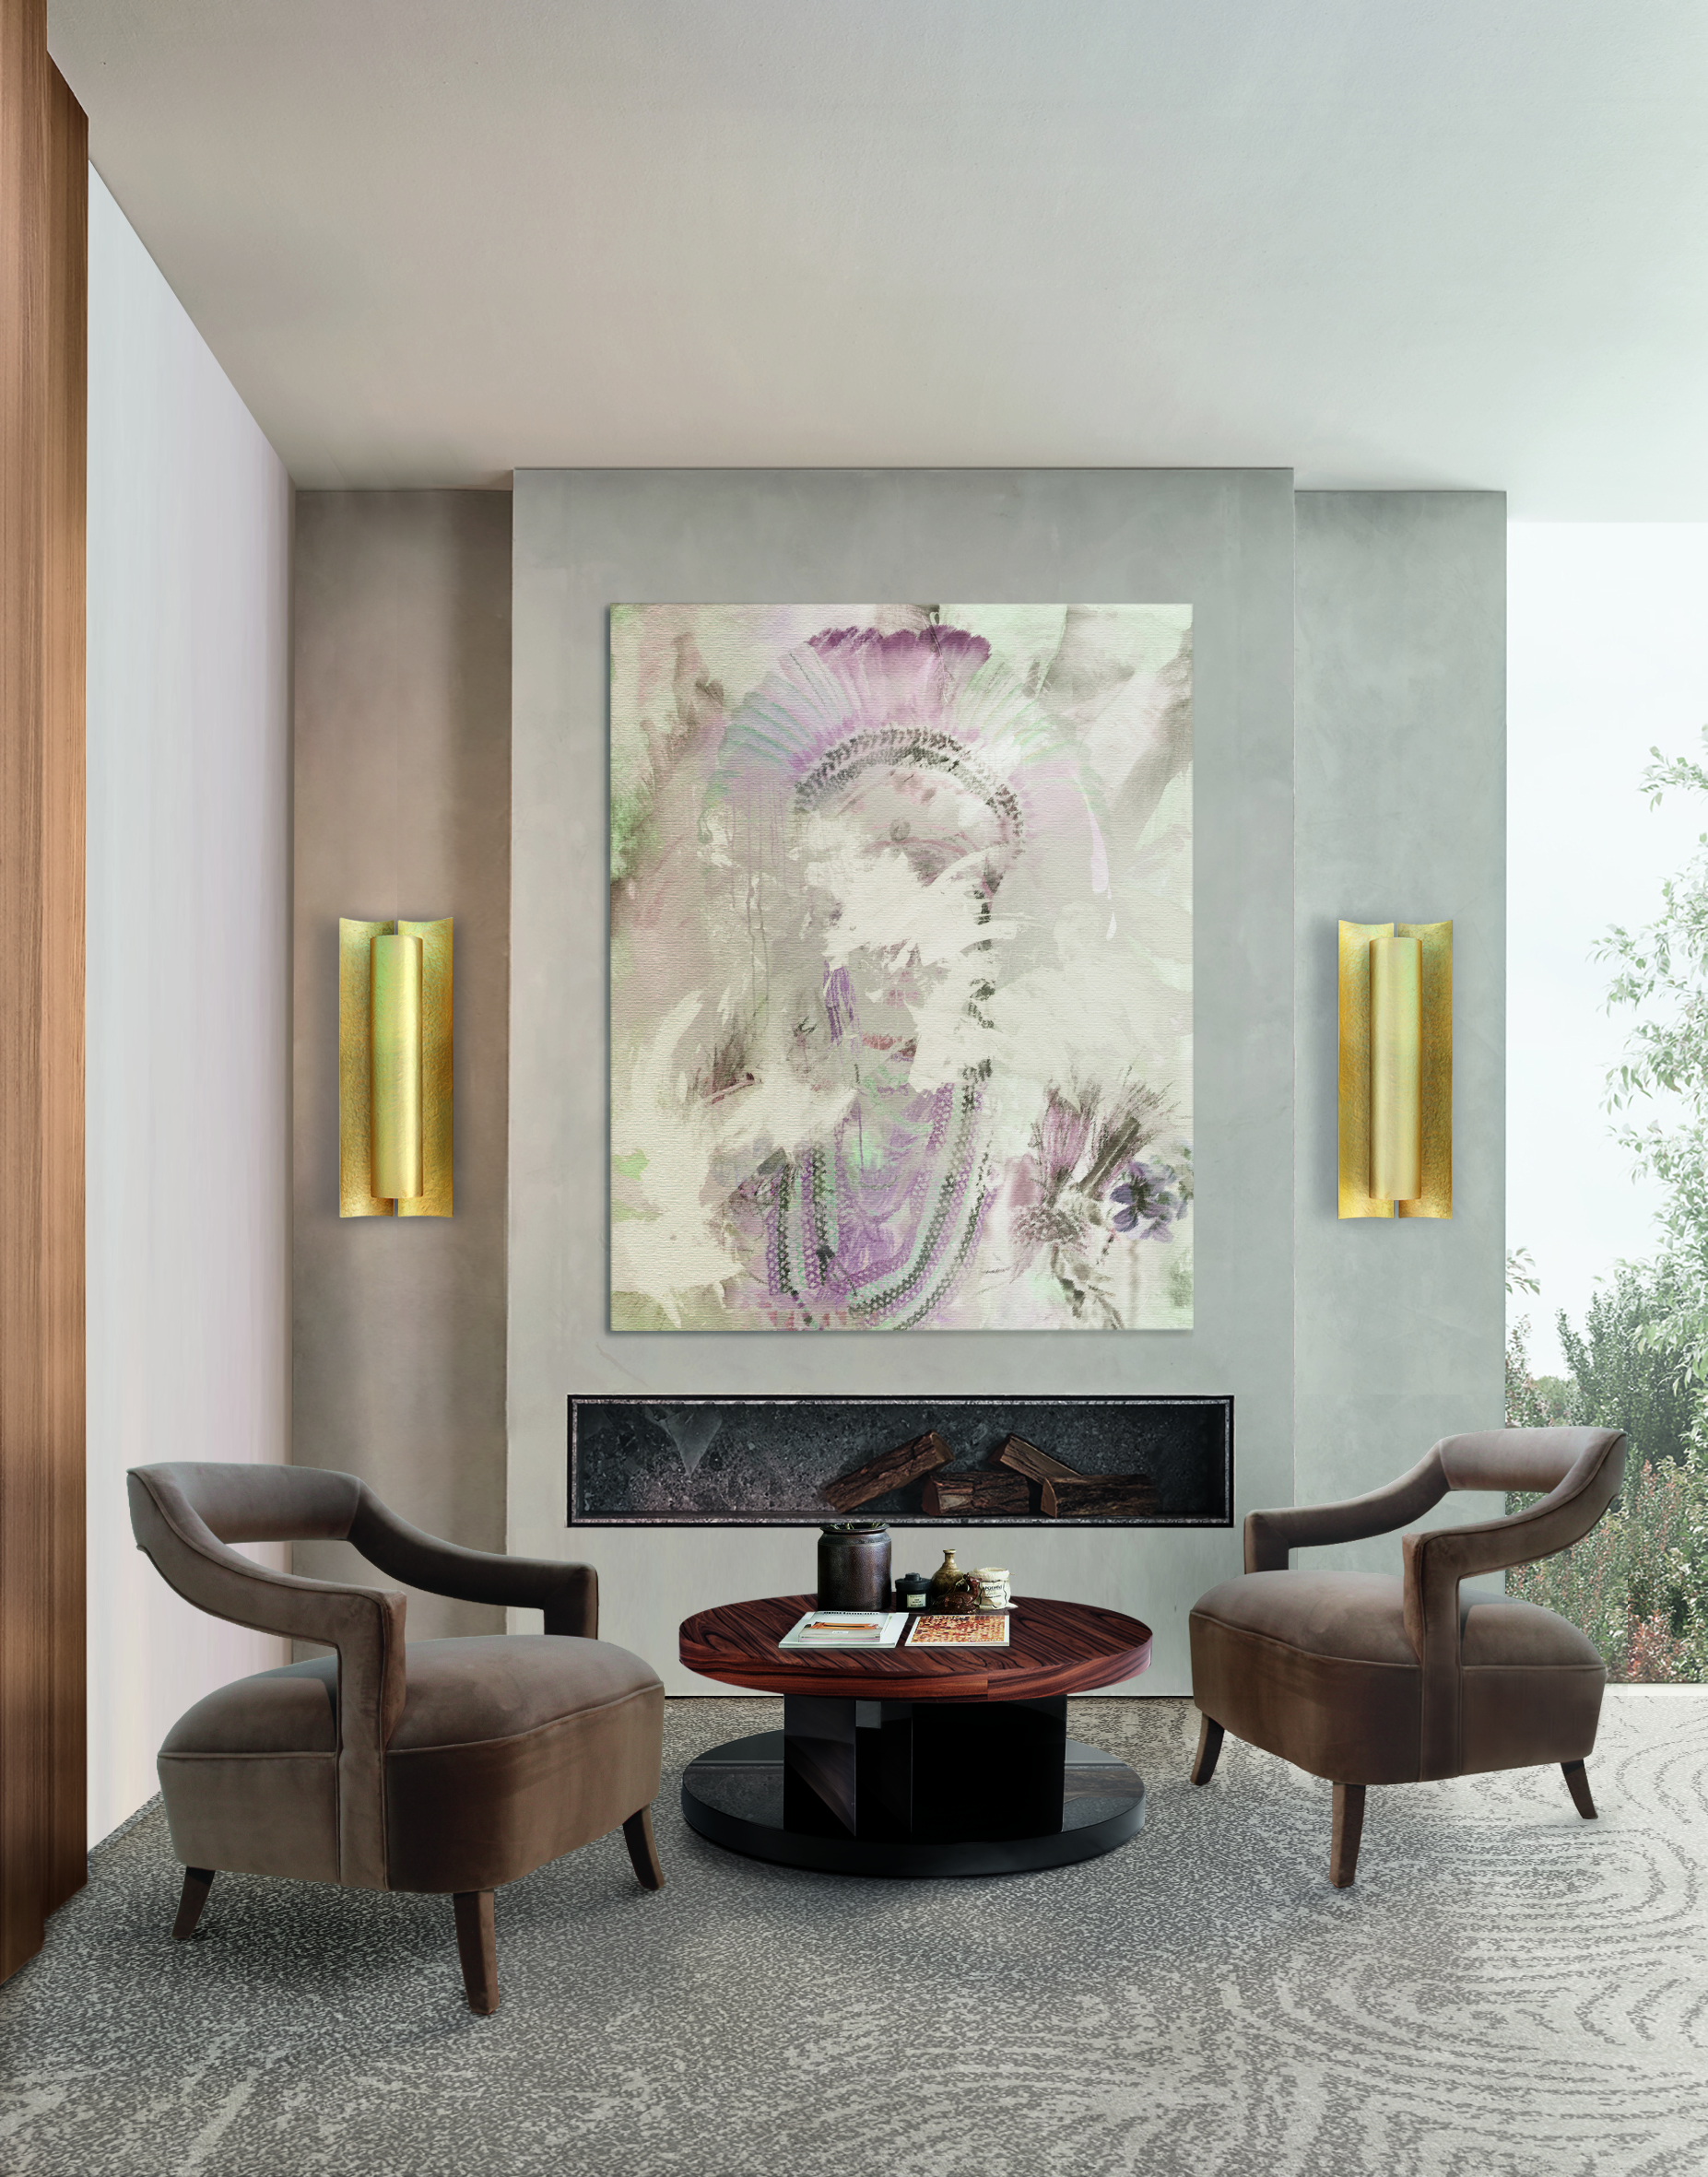 2020 interior design trends 2020 Interior Design Trends: Enter 2020 with Sophistication 2020 Interior Design Trends Enter 2020 with Sophistication 5